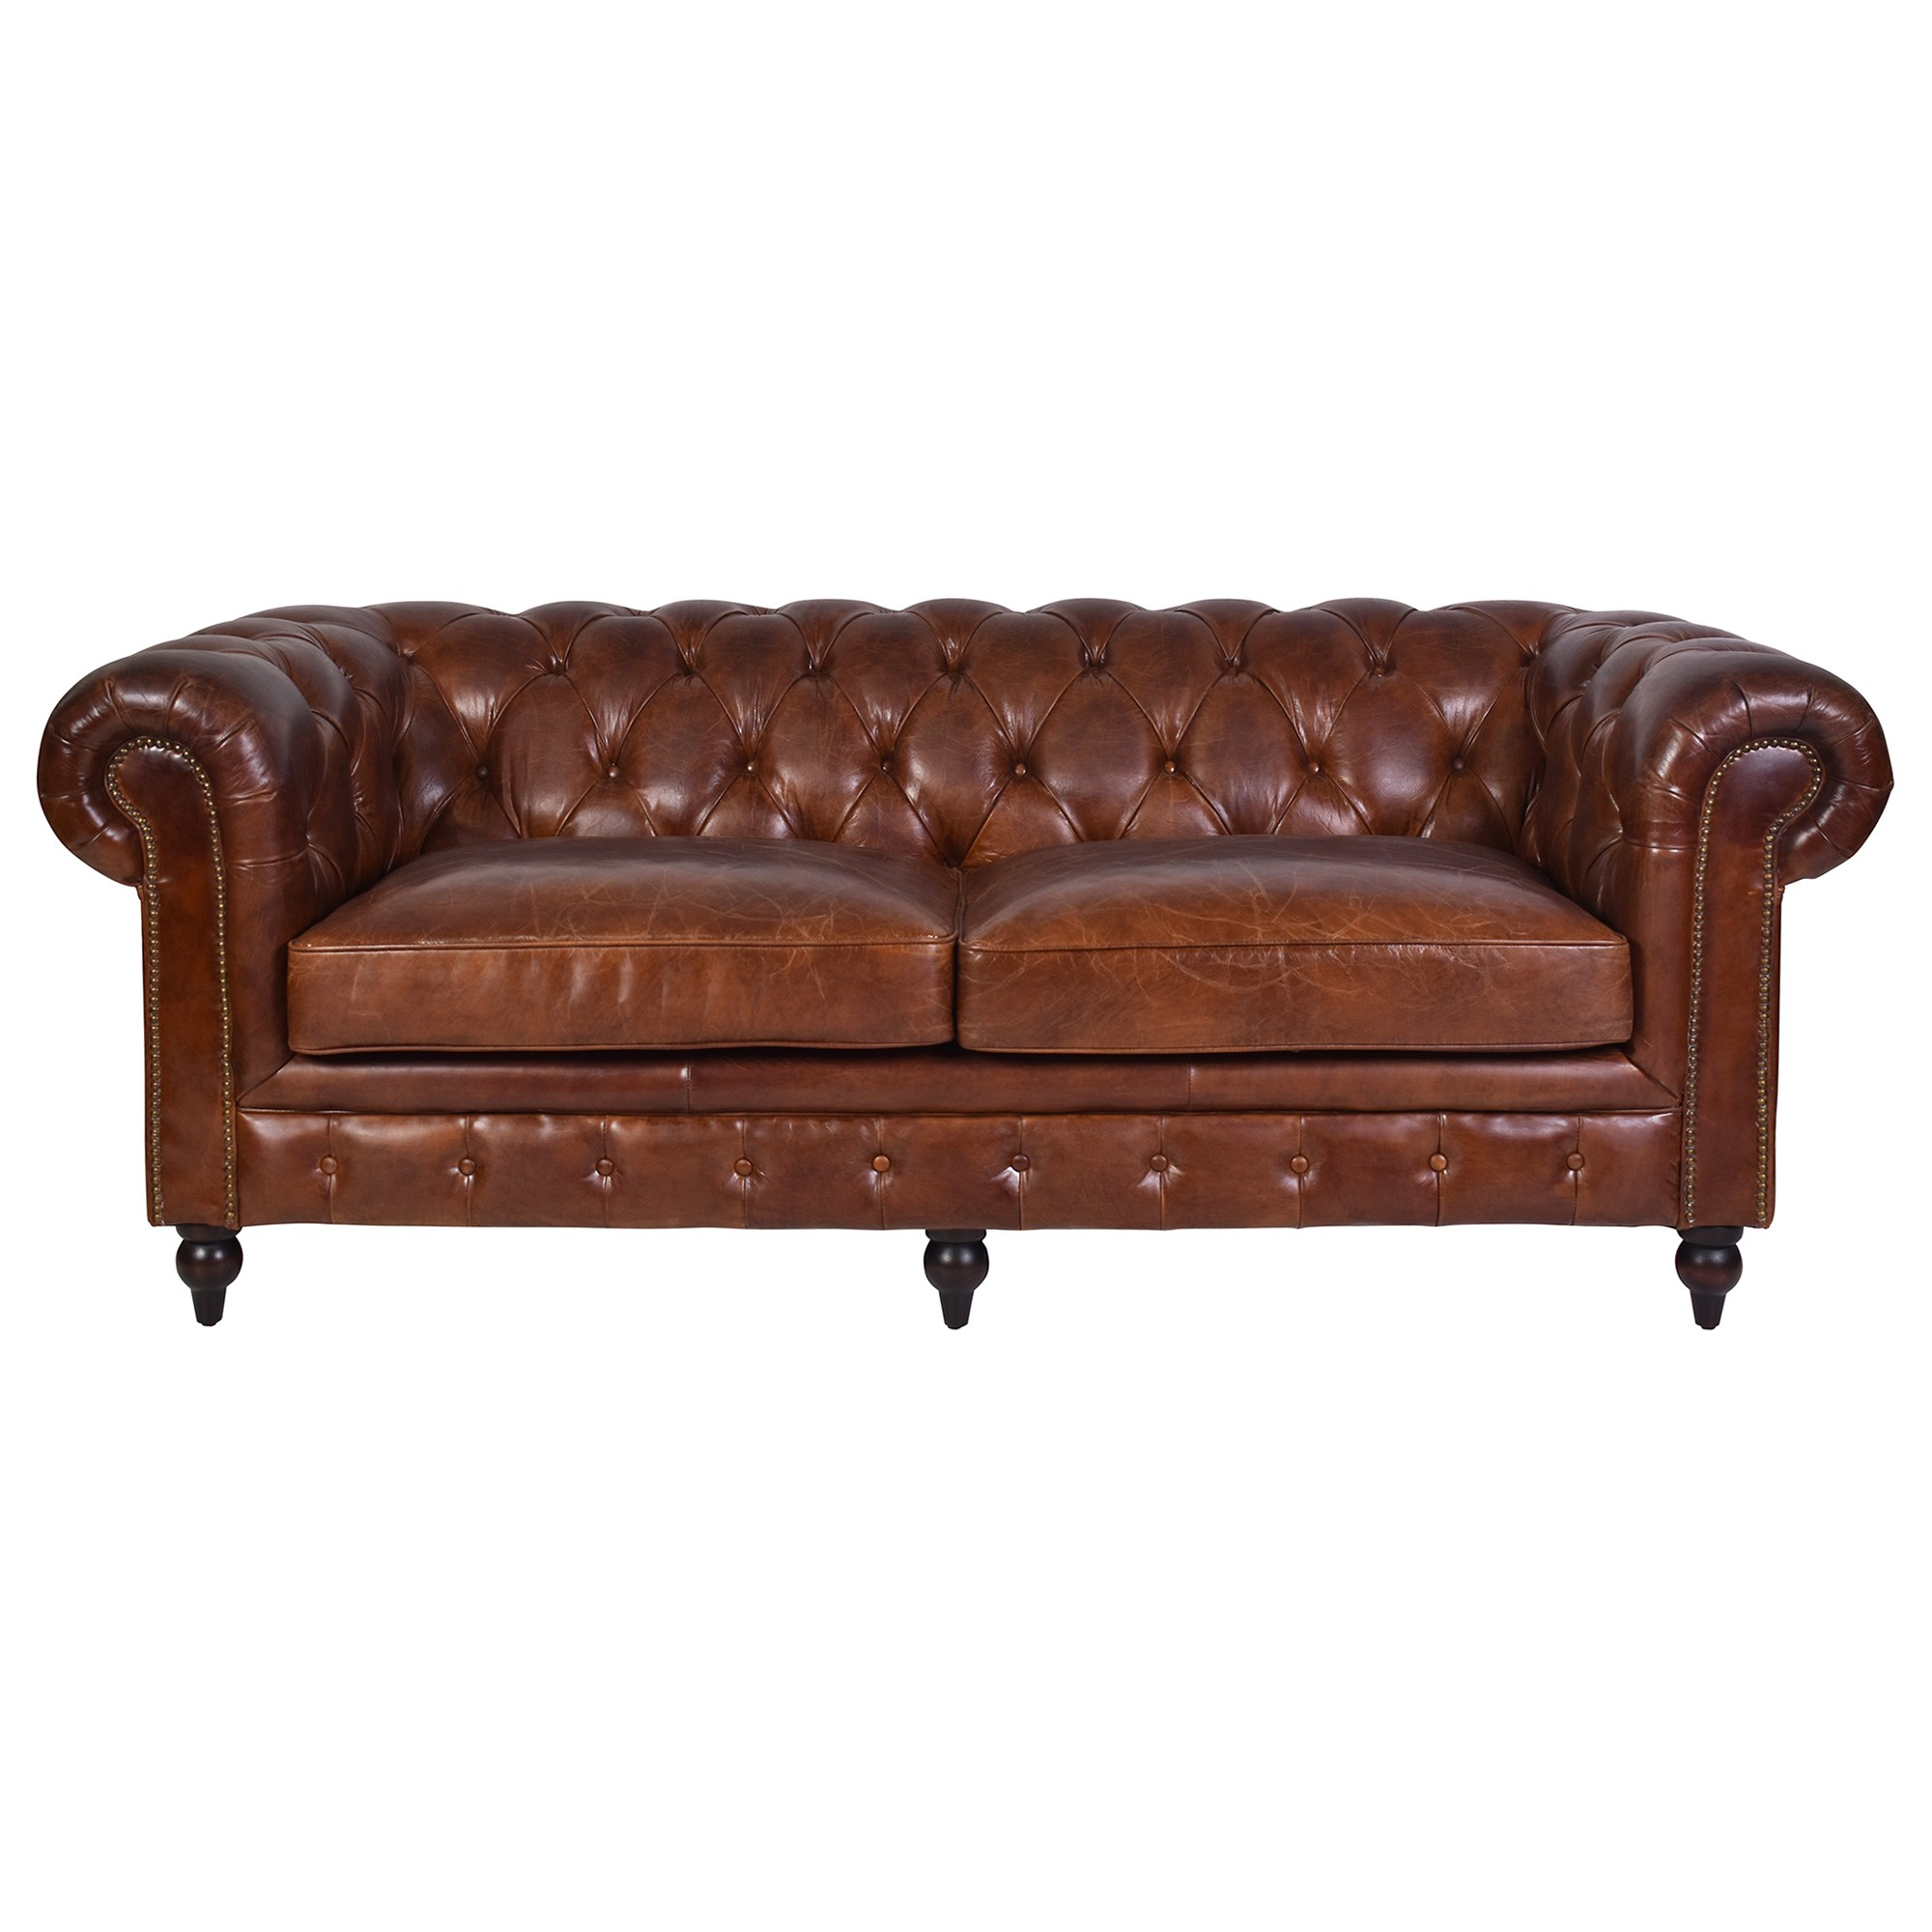 Barmston Aged Leather Chestfiled Sofa, 3 Seater